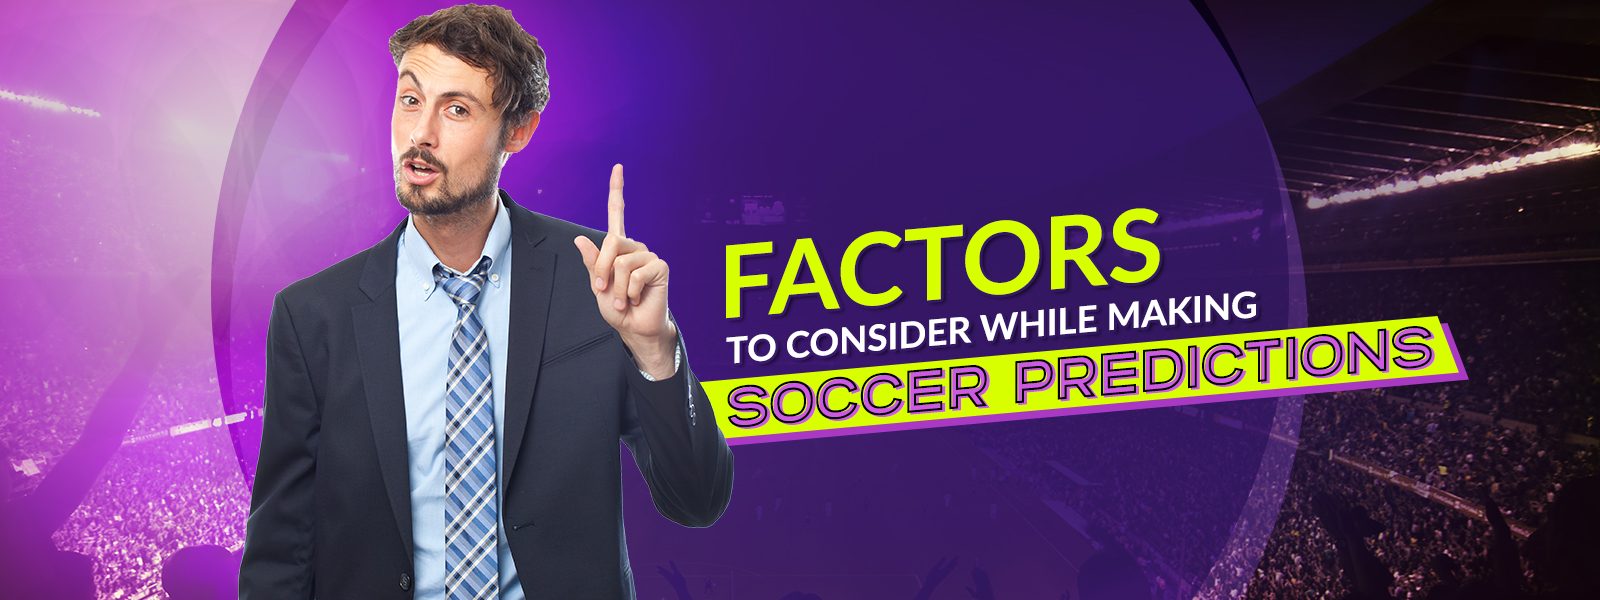 Factors to Consider While Making Soccer Predictions